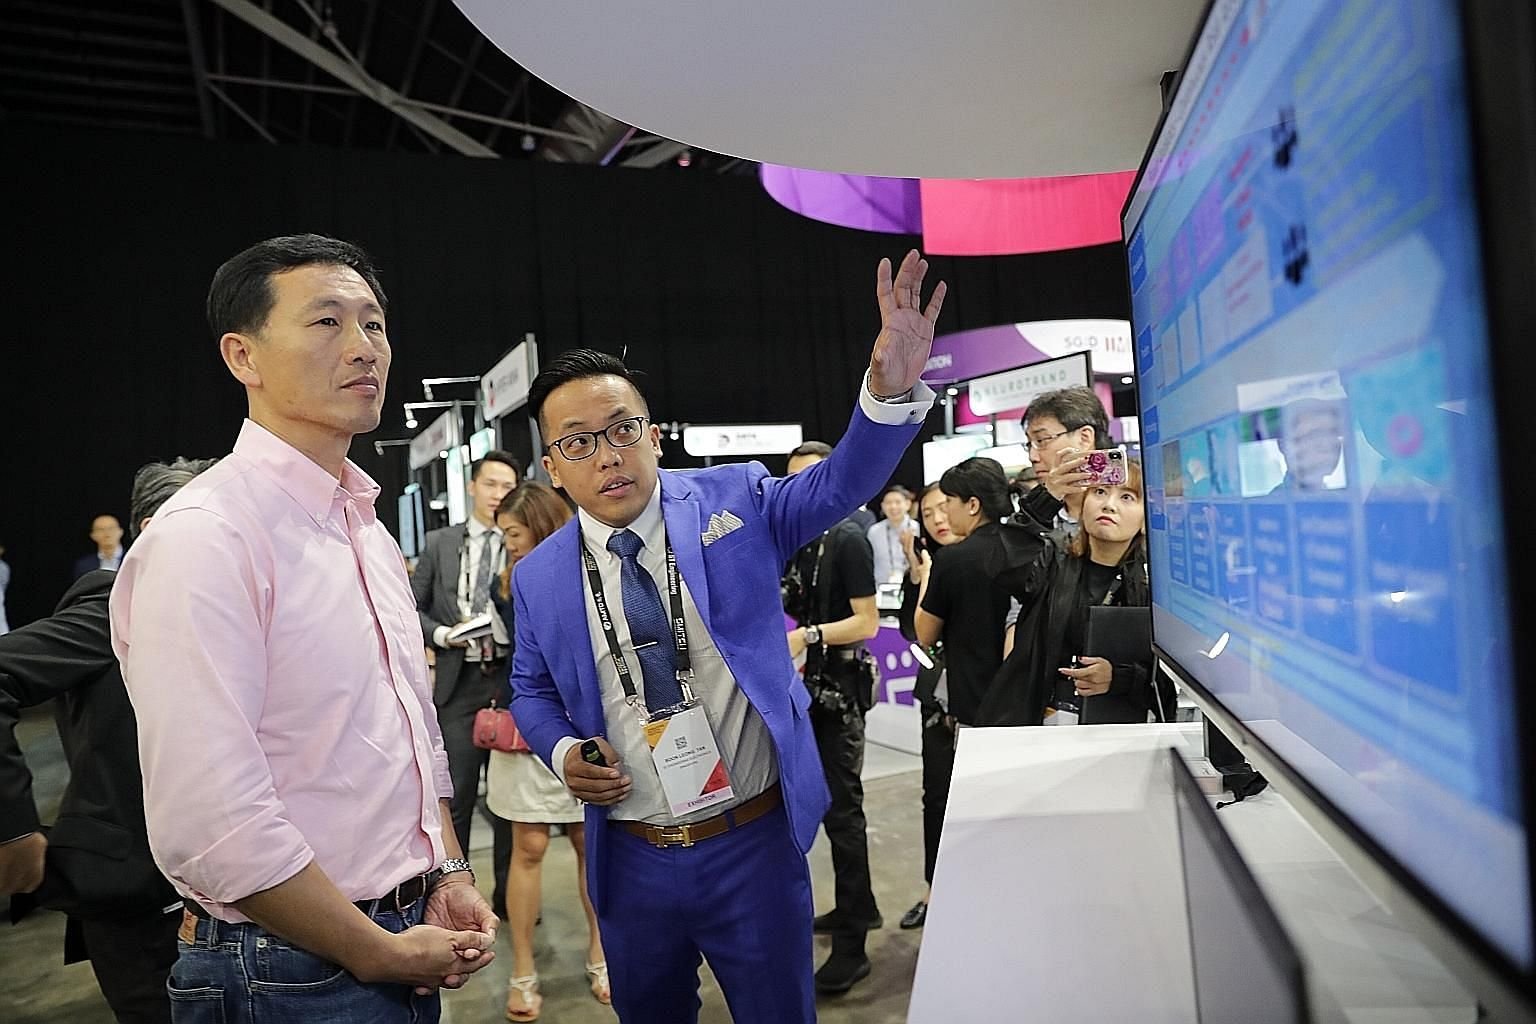 Education Minister Ong Ye Kung visiting ST Engineering's booth at the Singapore FinTech Festival yesterday. With him was Mr Tan Boon Leong, a senior system consultant (data analytics) from ST Engineering.